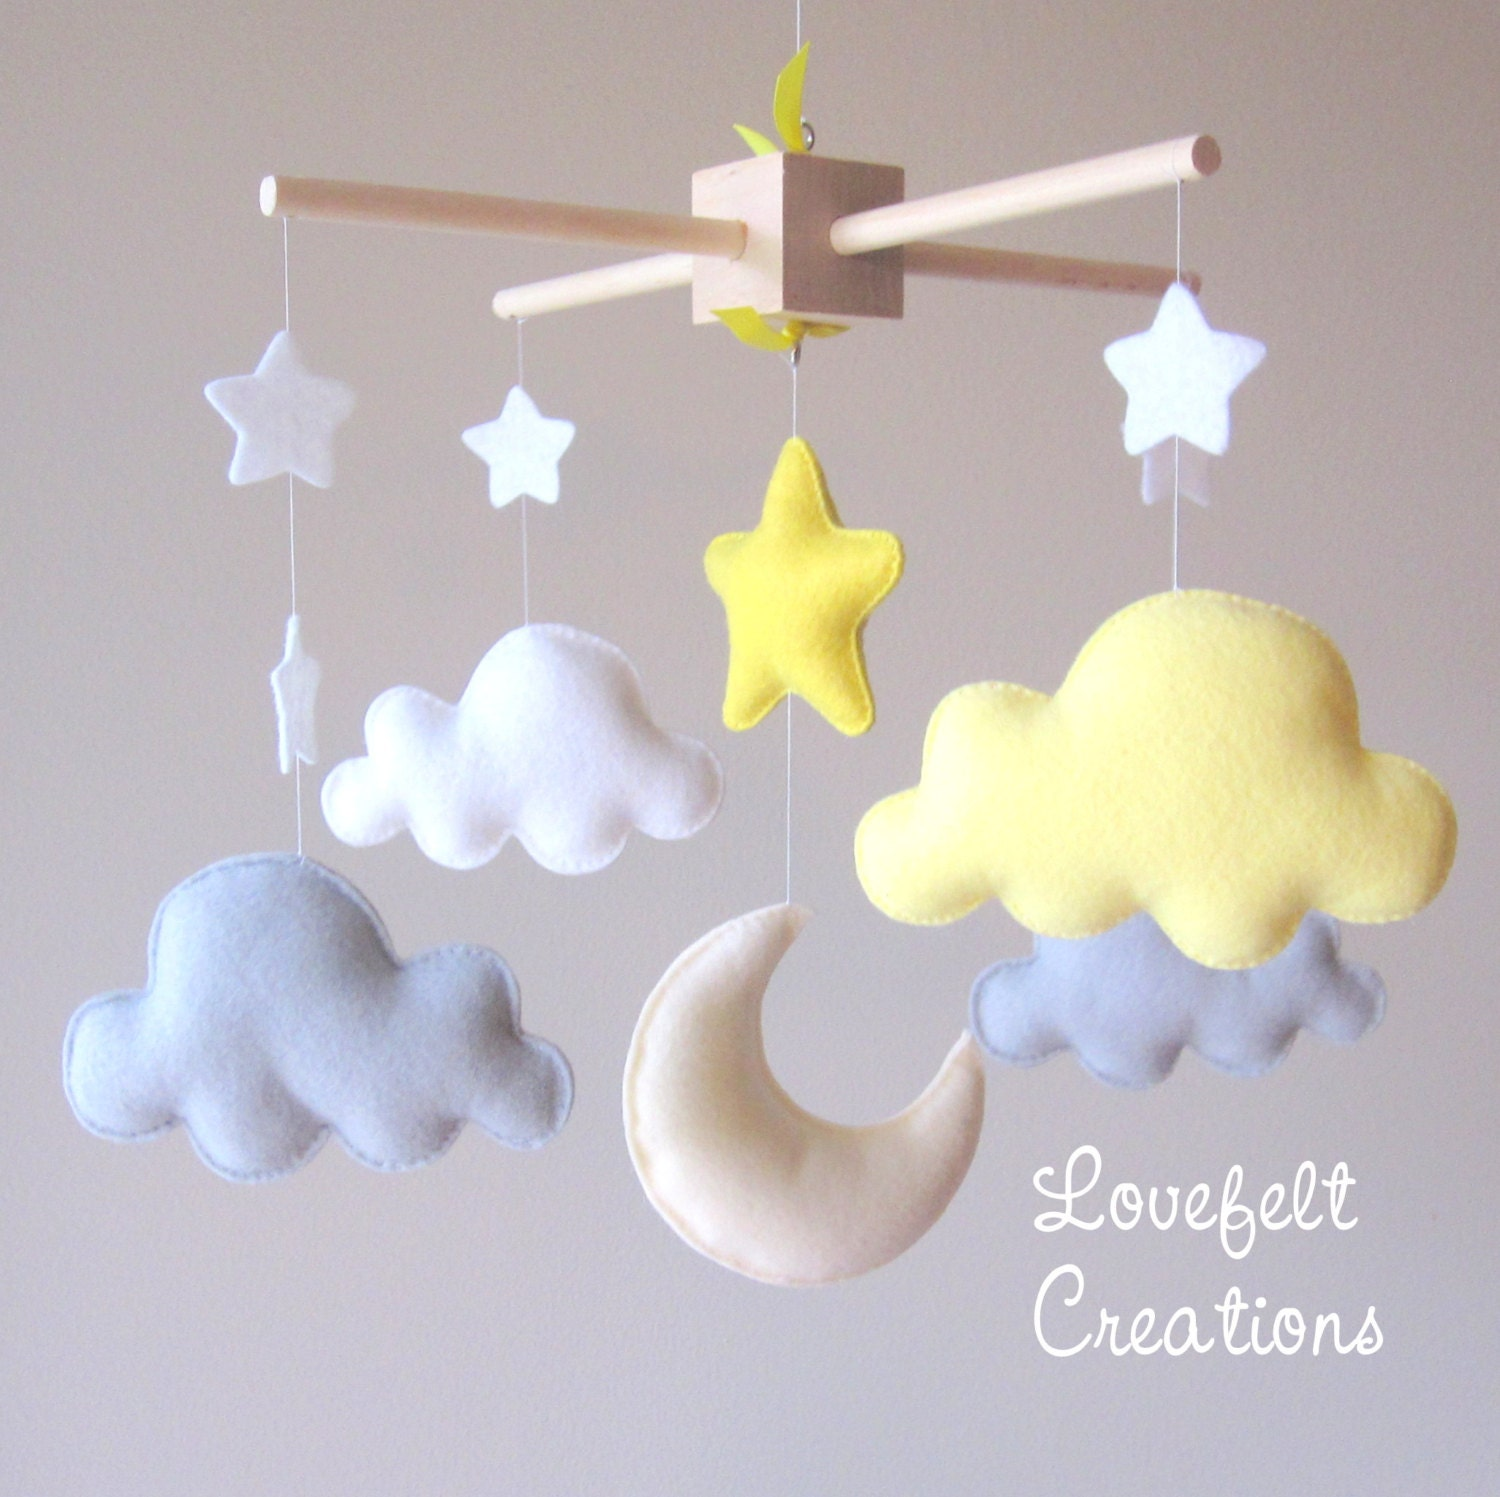 mobiles for baby baby mobile cloud mobile moon clouds mobile  - baby mobile cloud mobile moon clouds mobile yellow and